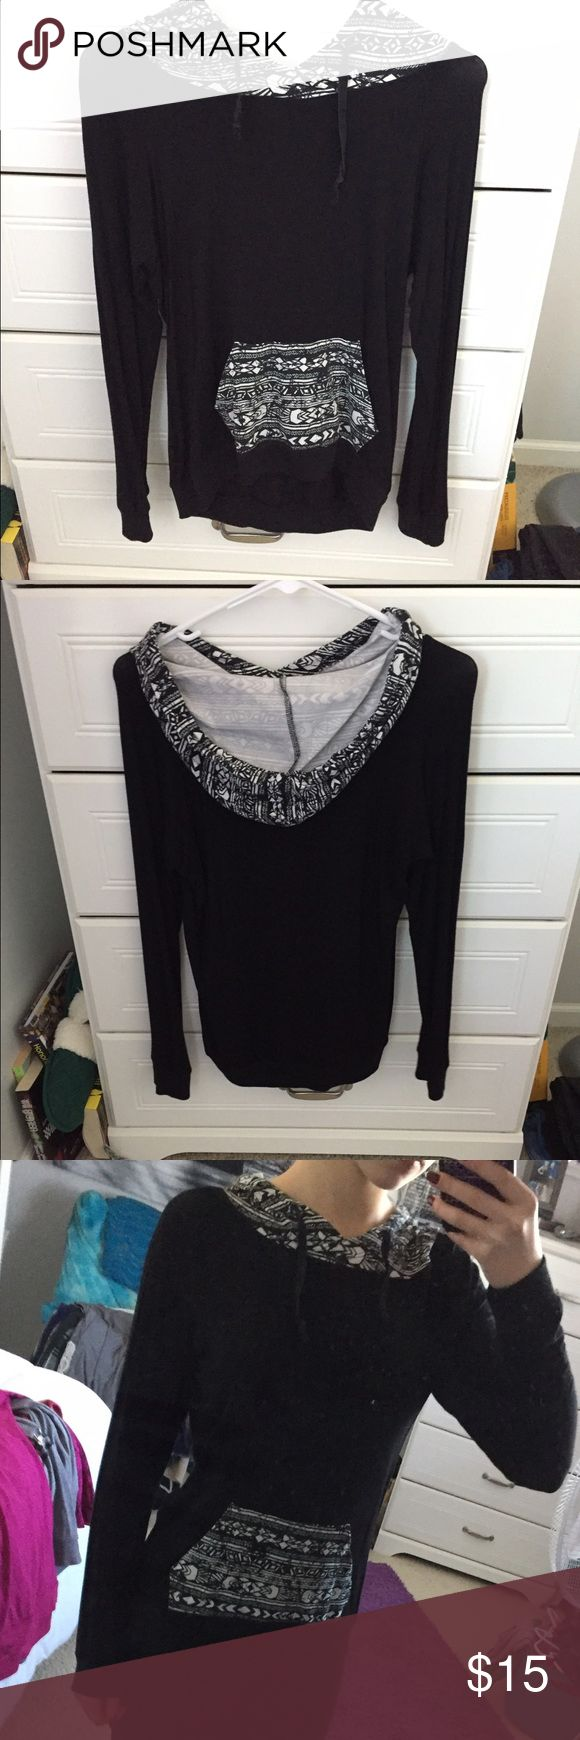 Black and white hoodie good condition, super soft, stretchy material Tops Sweatshirts & Hoodies